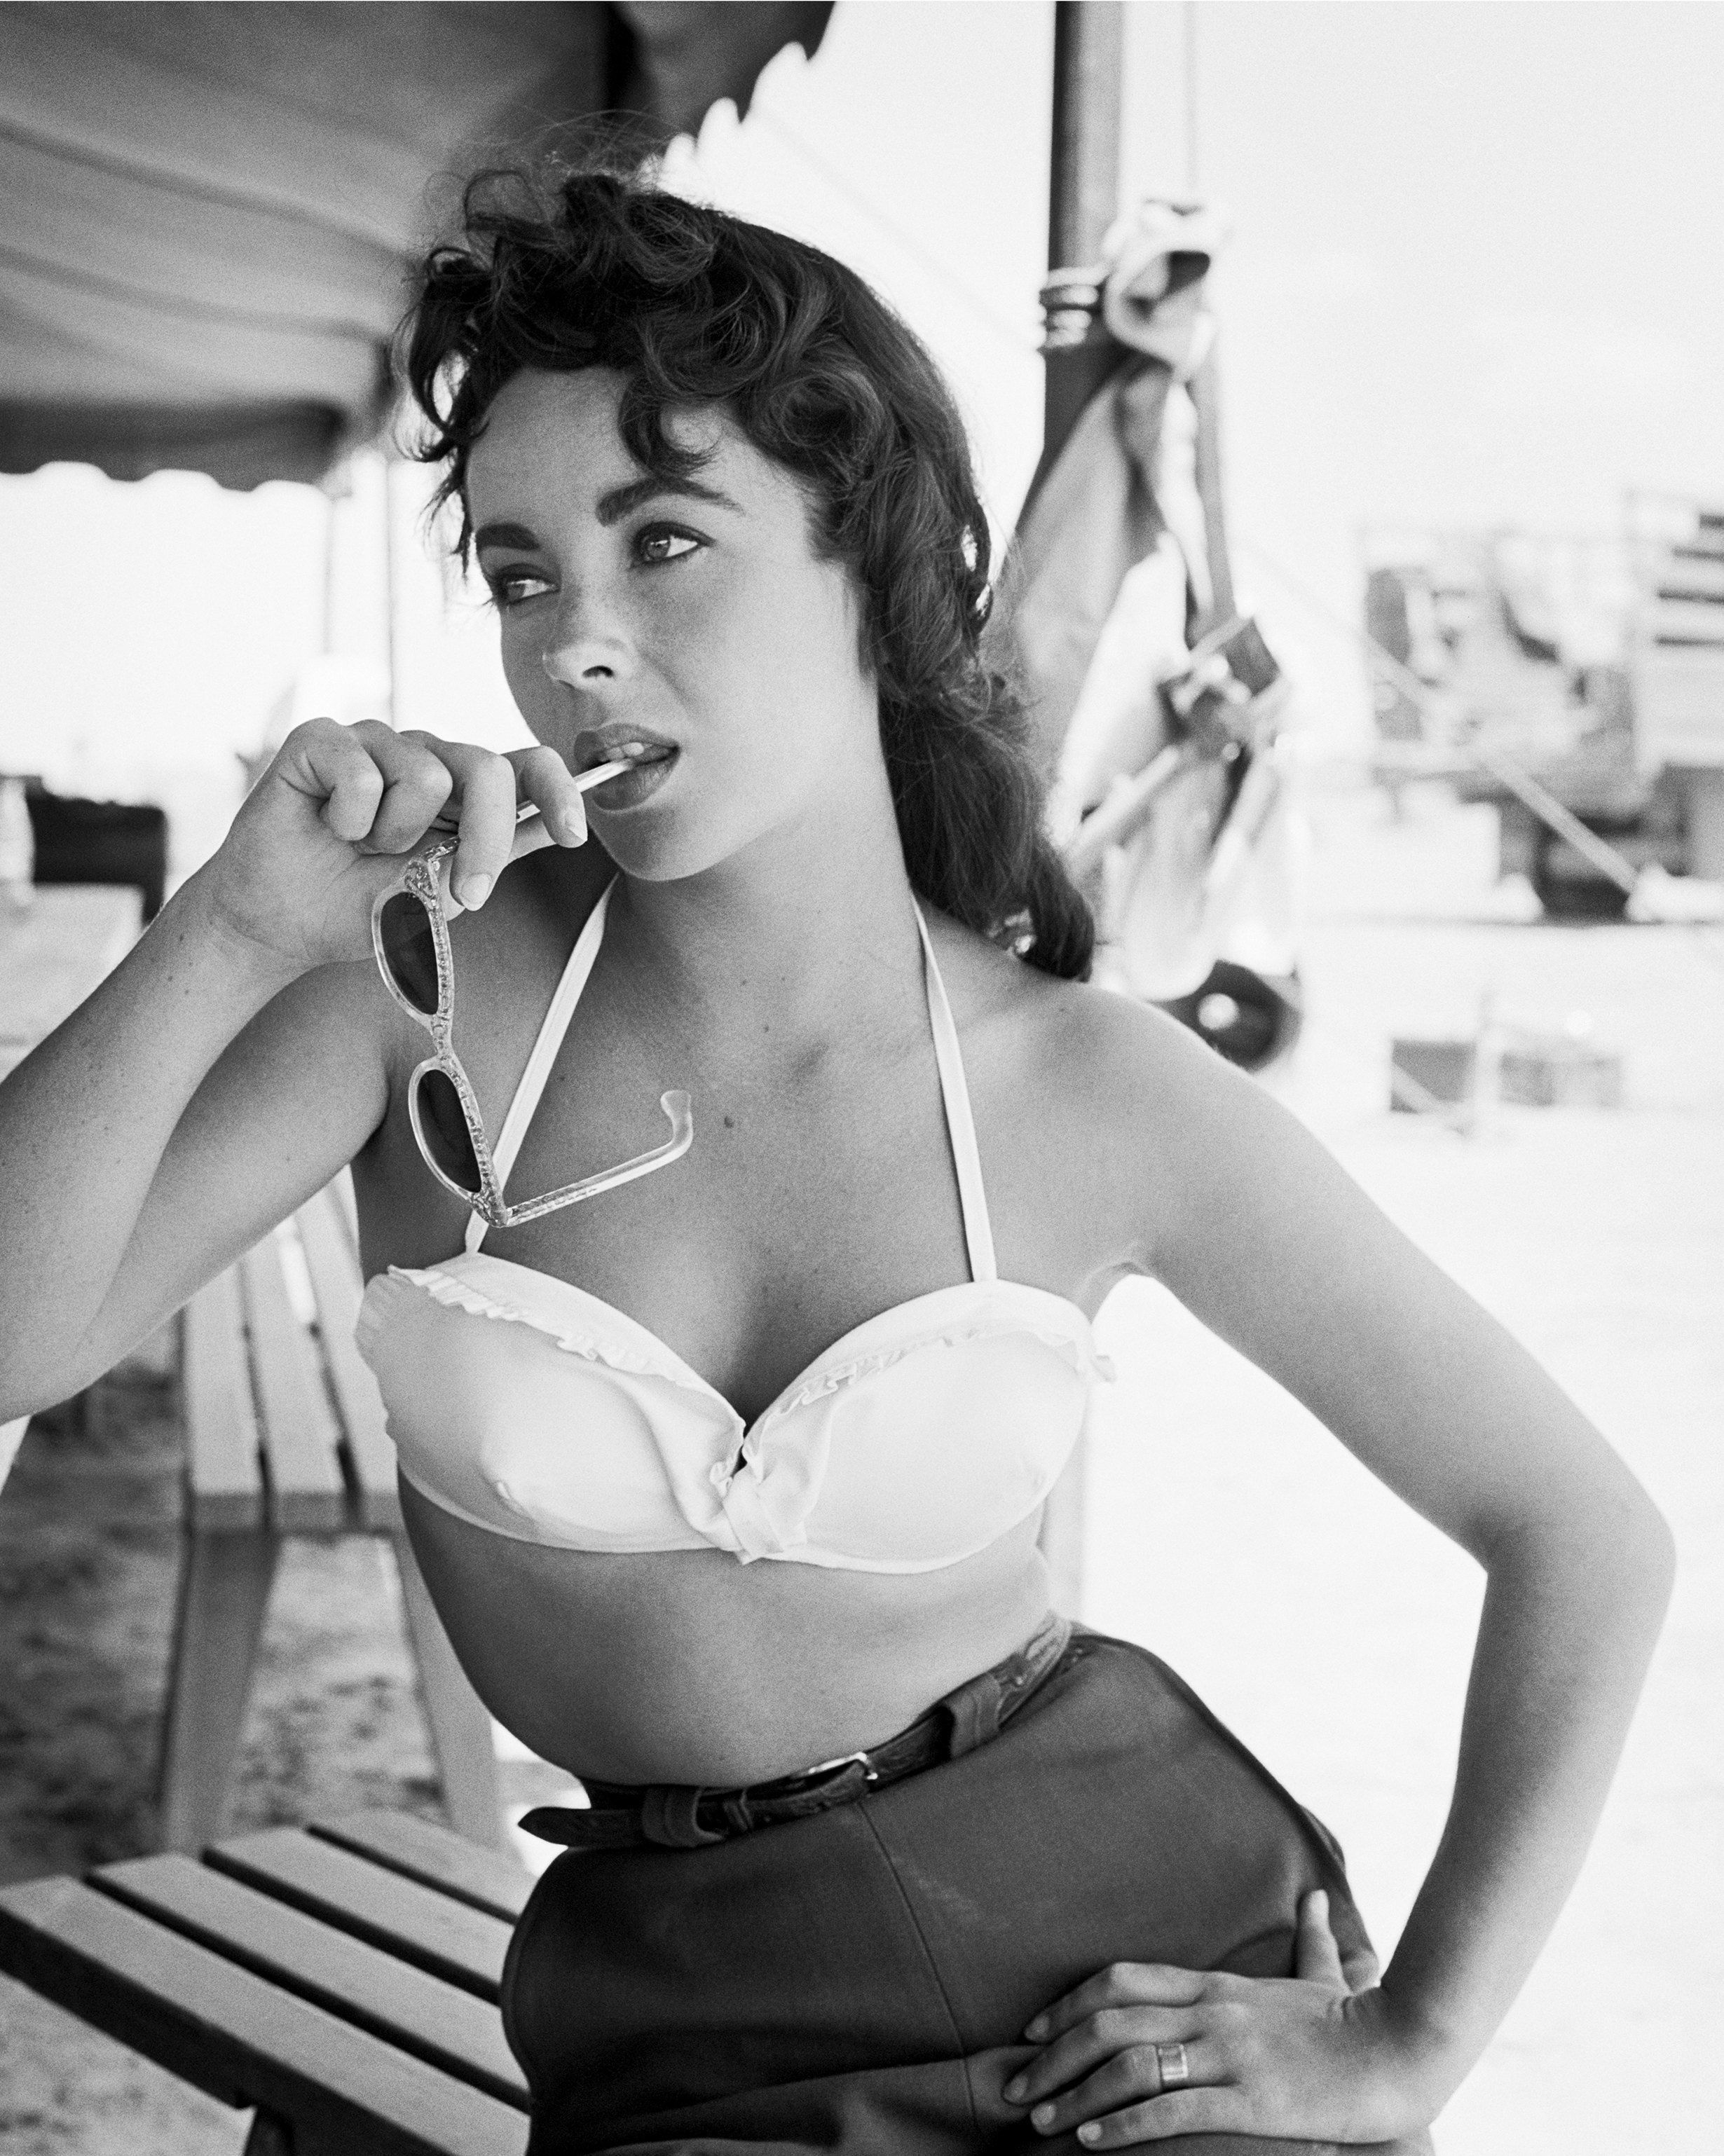 NOVEMBER 24: Actress Elizabeth Taylor teases with sunglasses in her mouth as she poses on the set of the movie 'Giant' which was released on November 24, 1956. (Photo by Frank Worth, Courtesy of Capital Art/Getty Images)